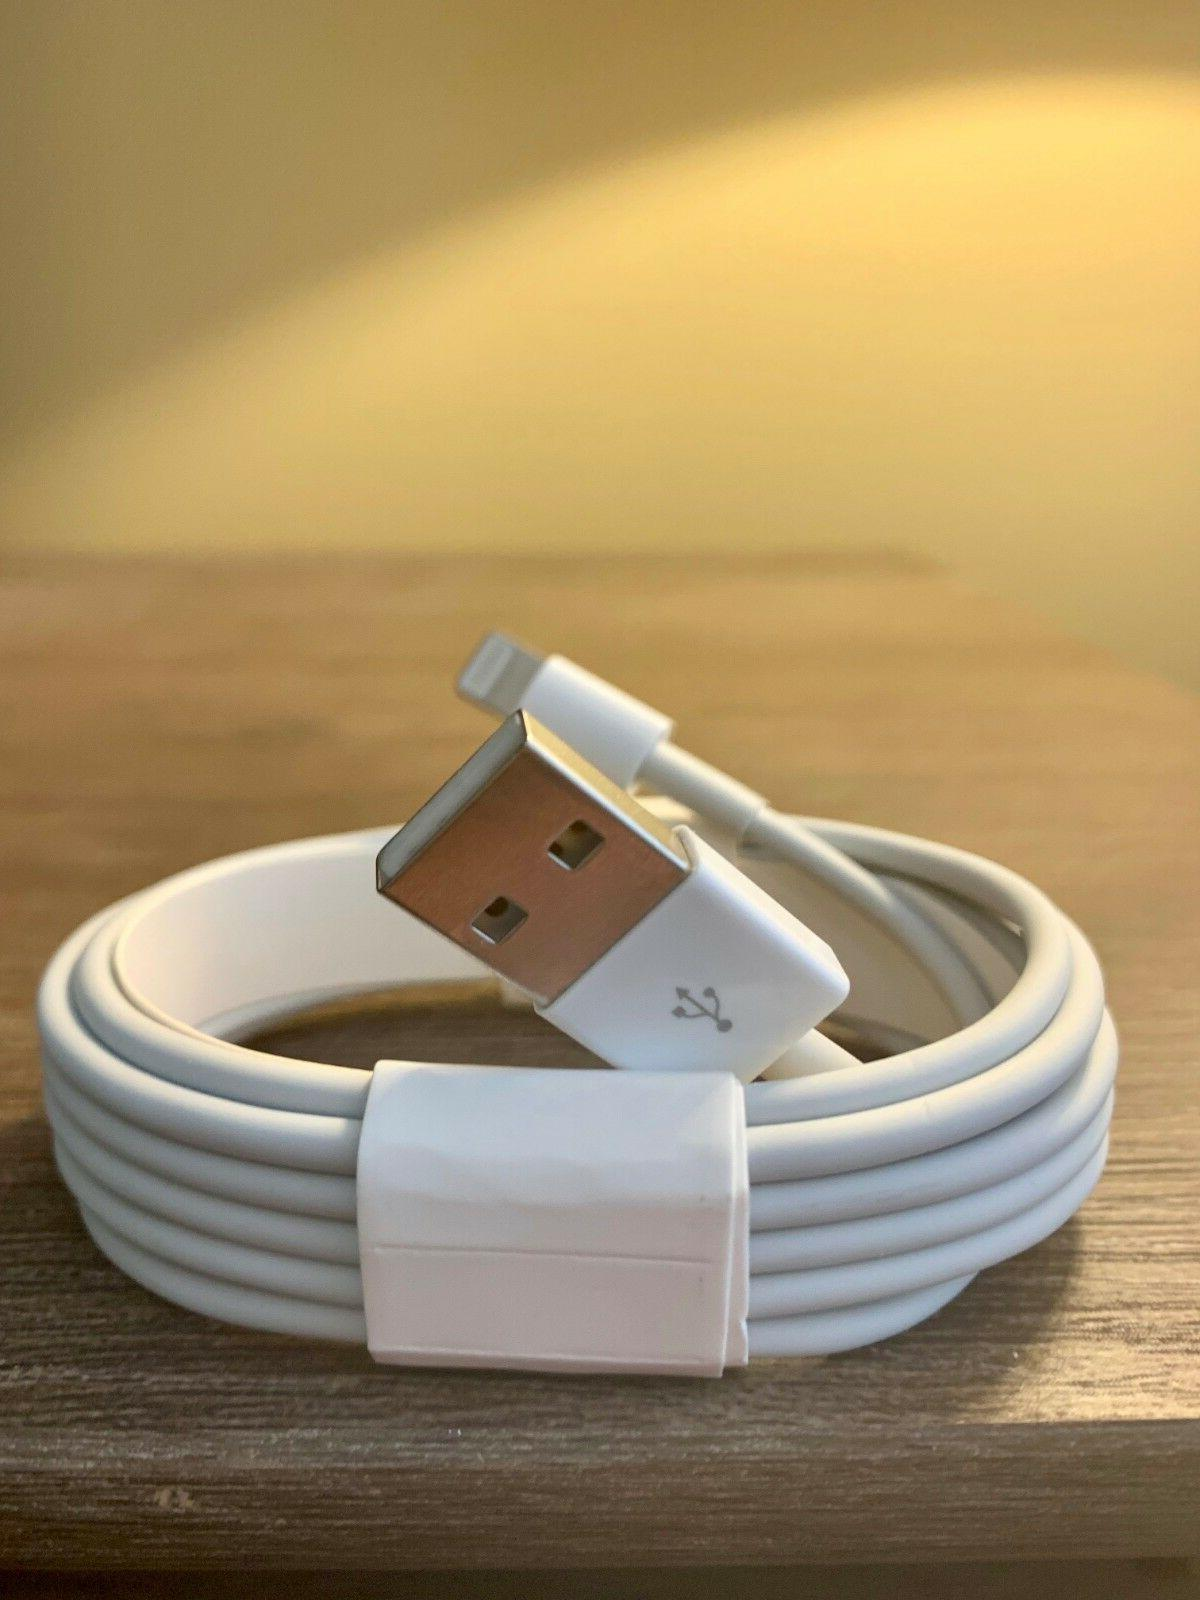 2x usb phone charger cable cord compatible